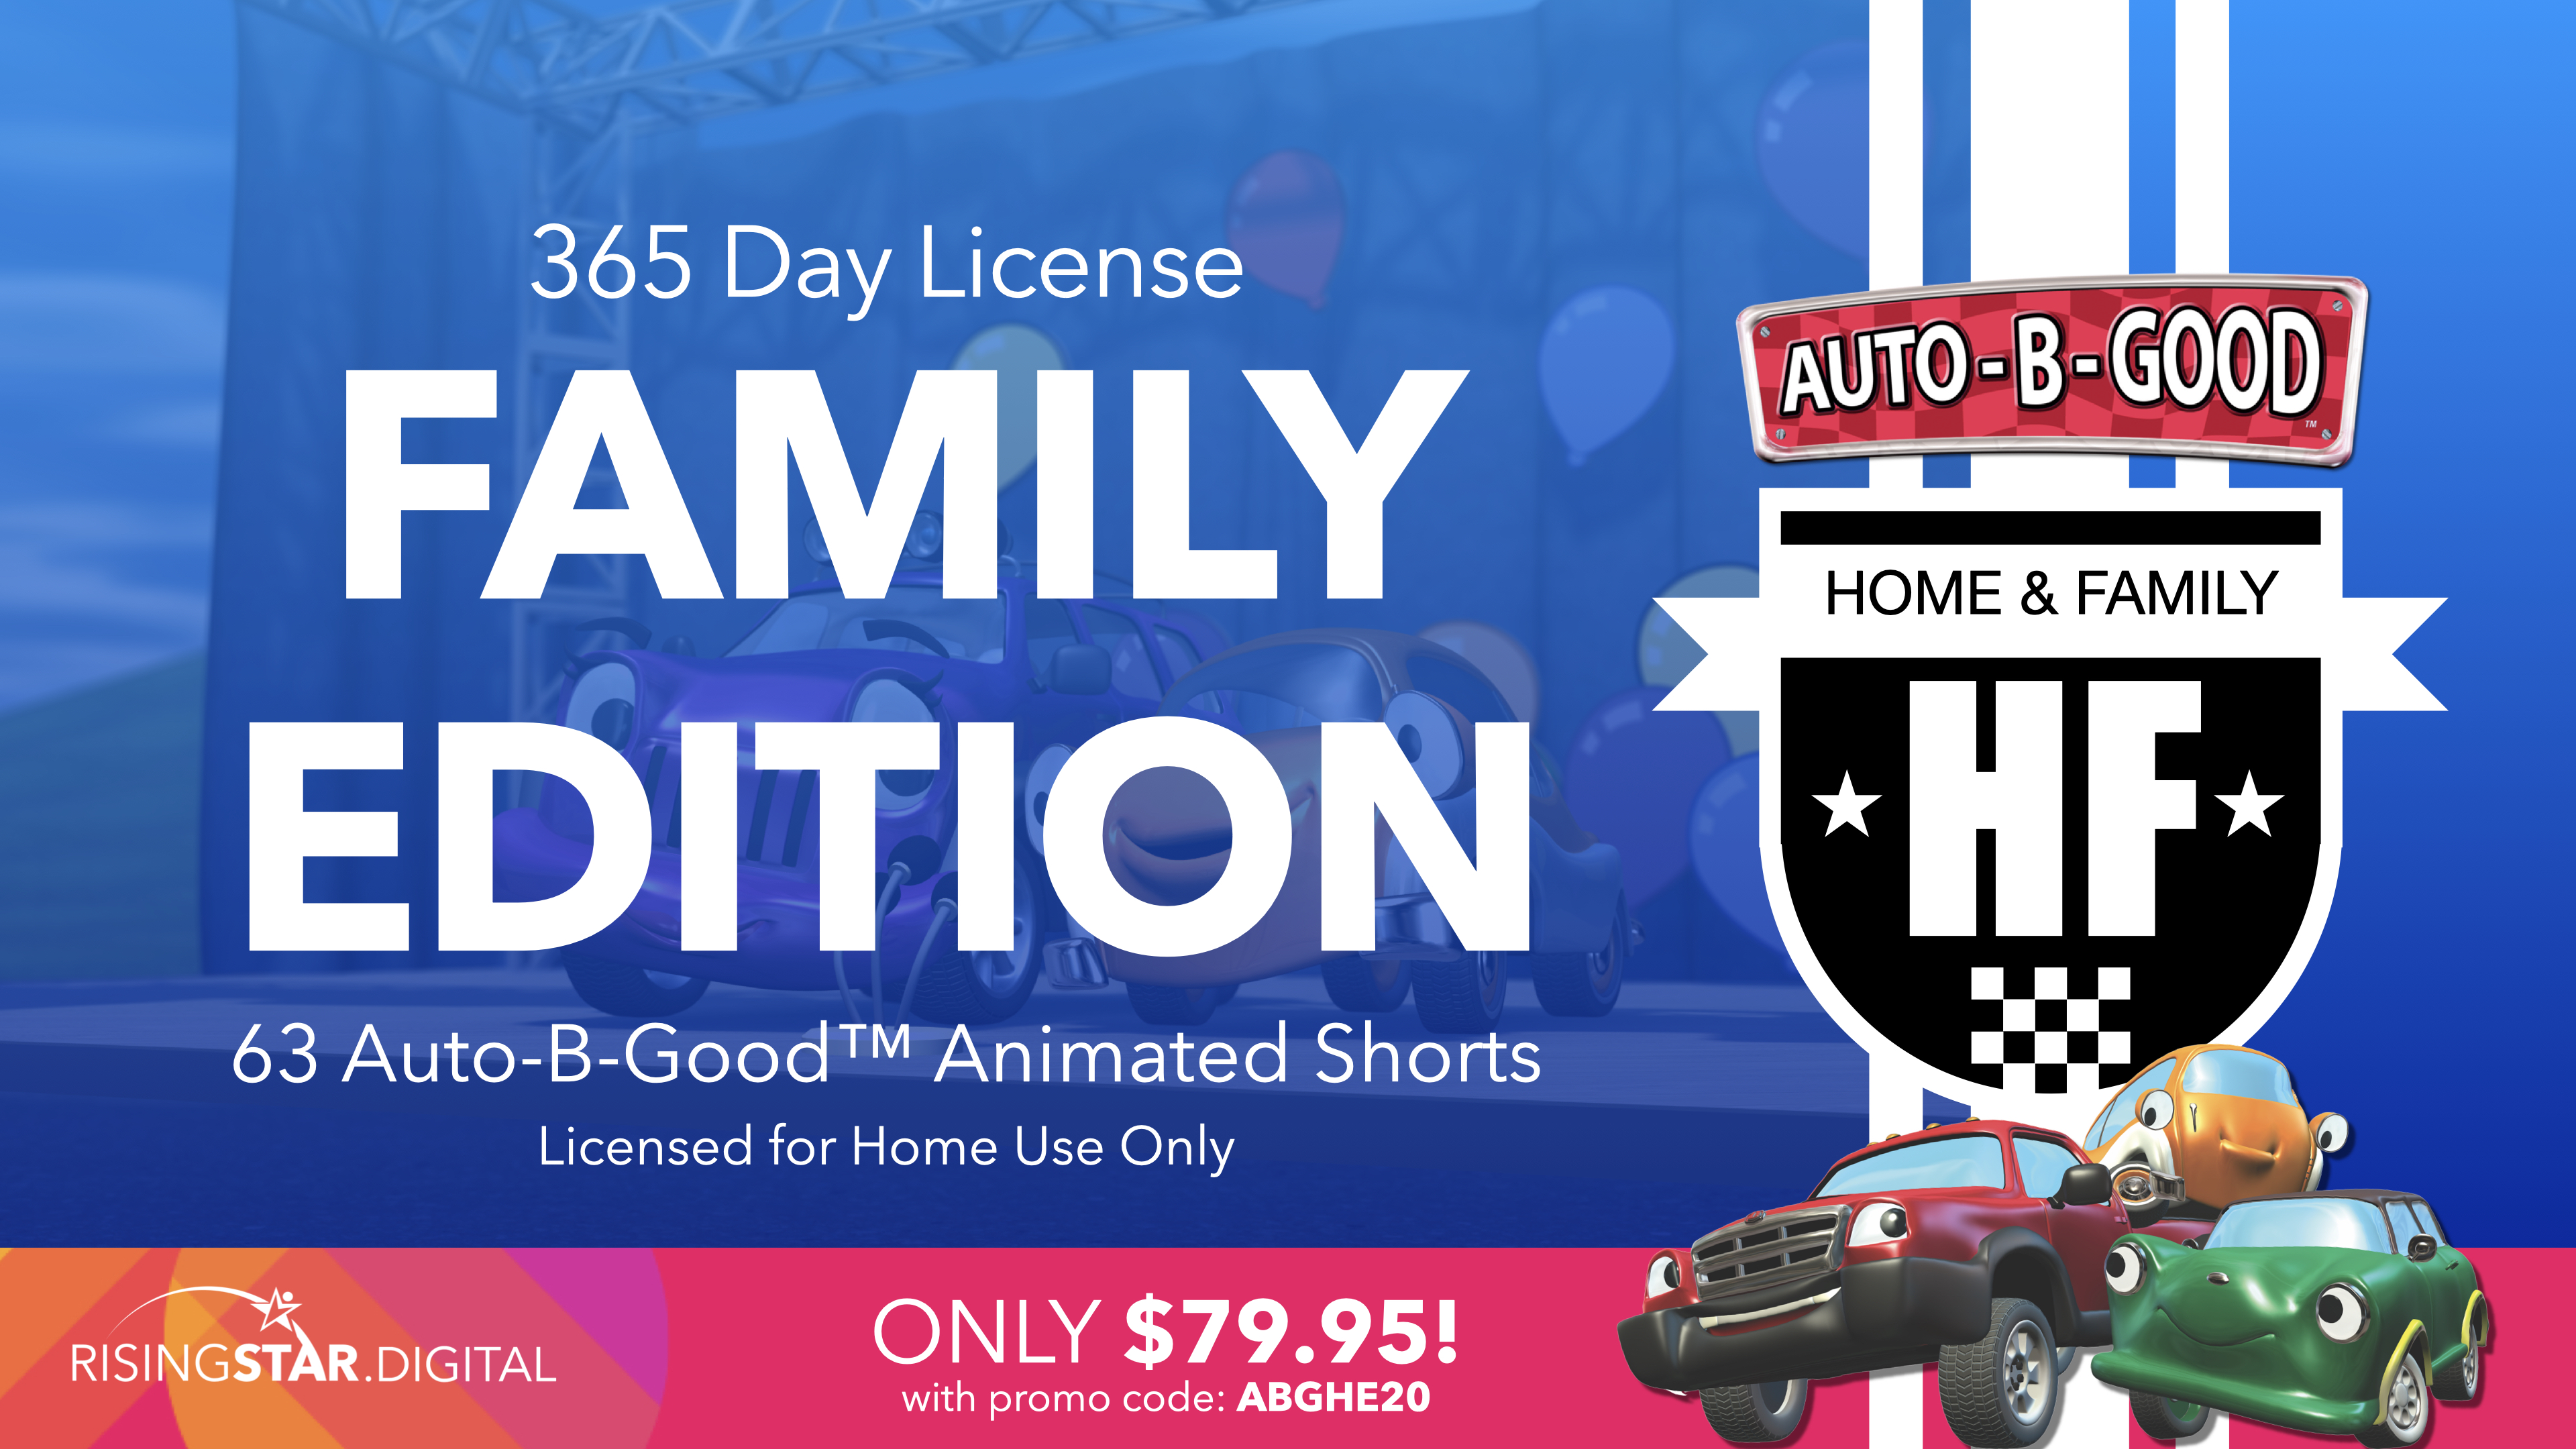 ABG Home Edition only $79.95 with Promo Code: ABGHE20